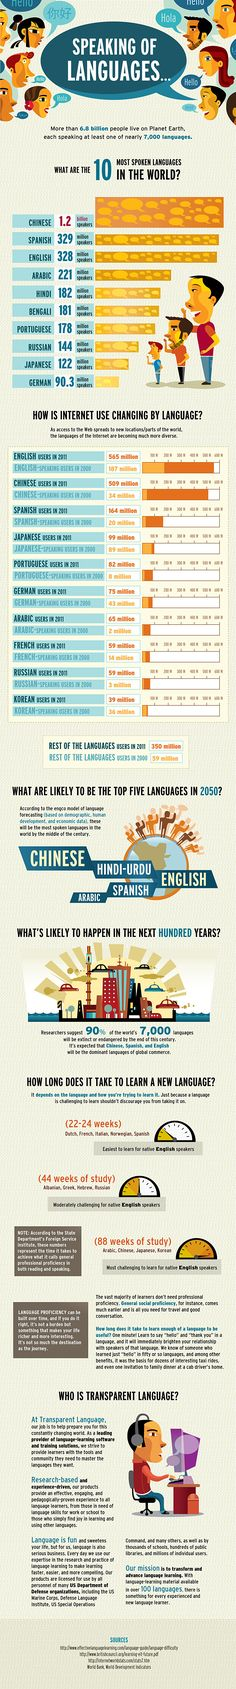 language infograph - http://www.transparent.com/language-resources/infographic-speaking-of-languages.jpg